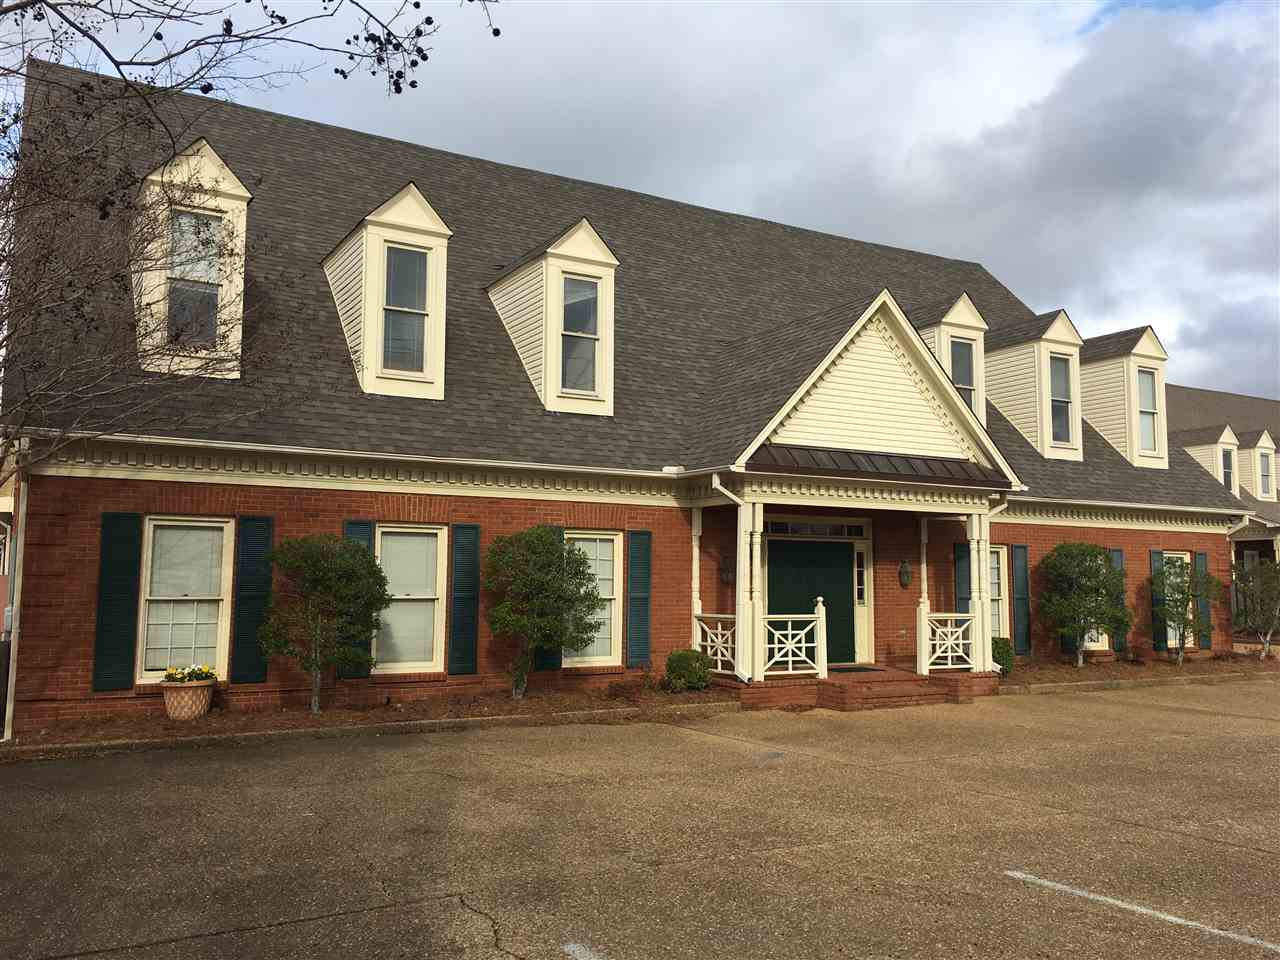 home jd johnson realty investment great location on hwy 51 in ridgeland near the proposed lake harbour highland colony parkway